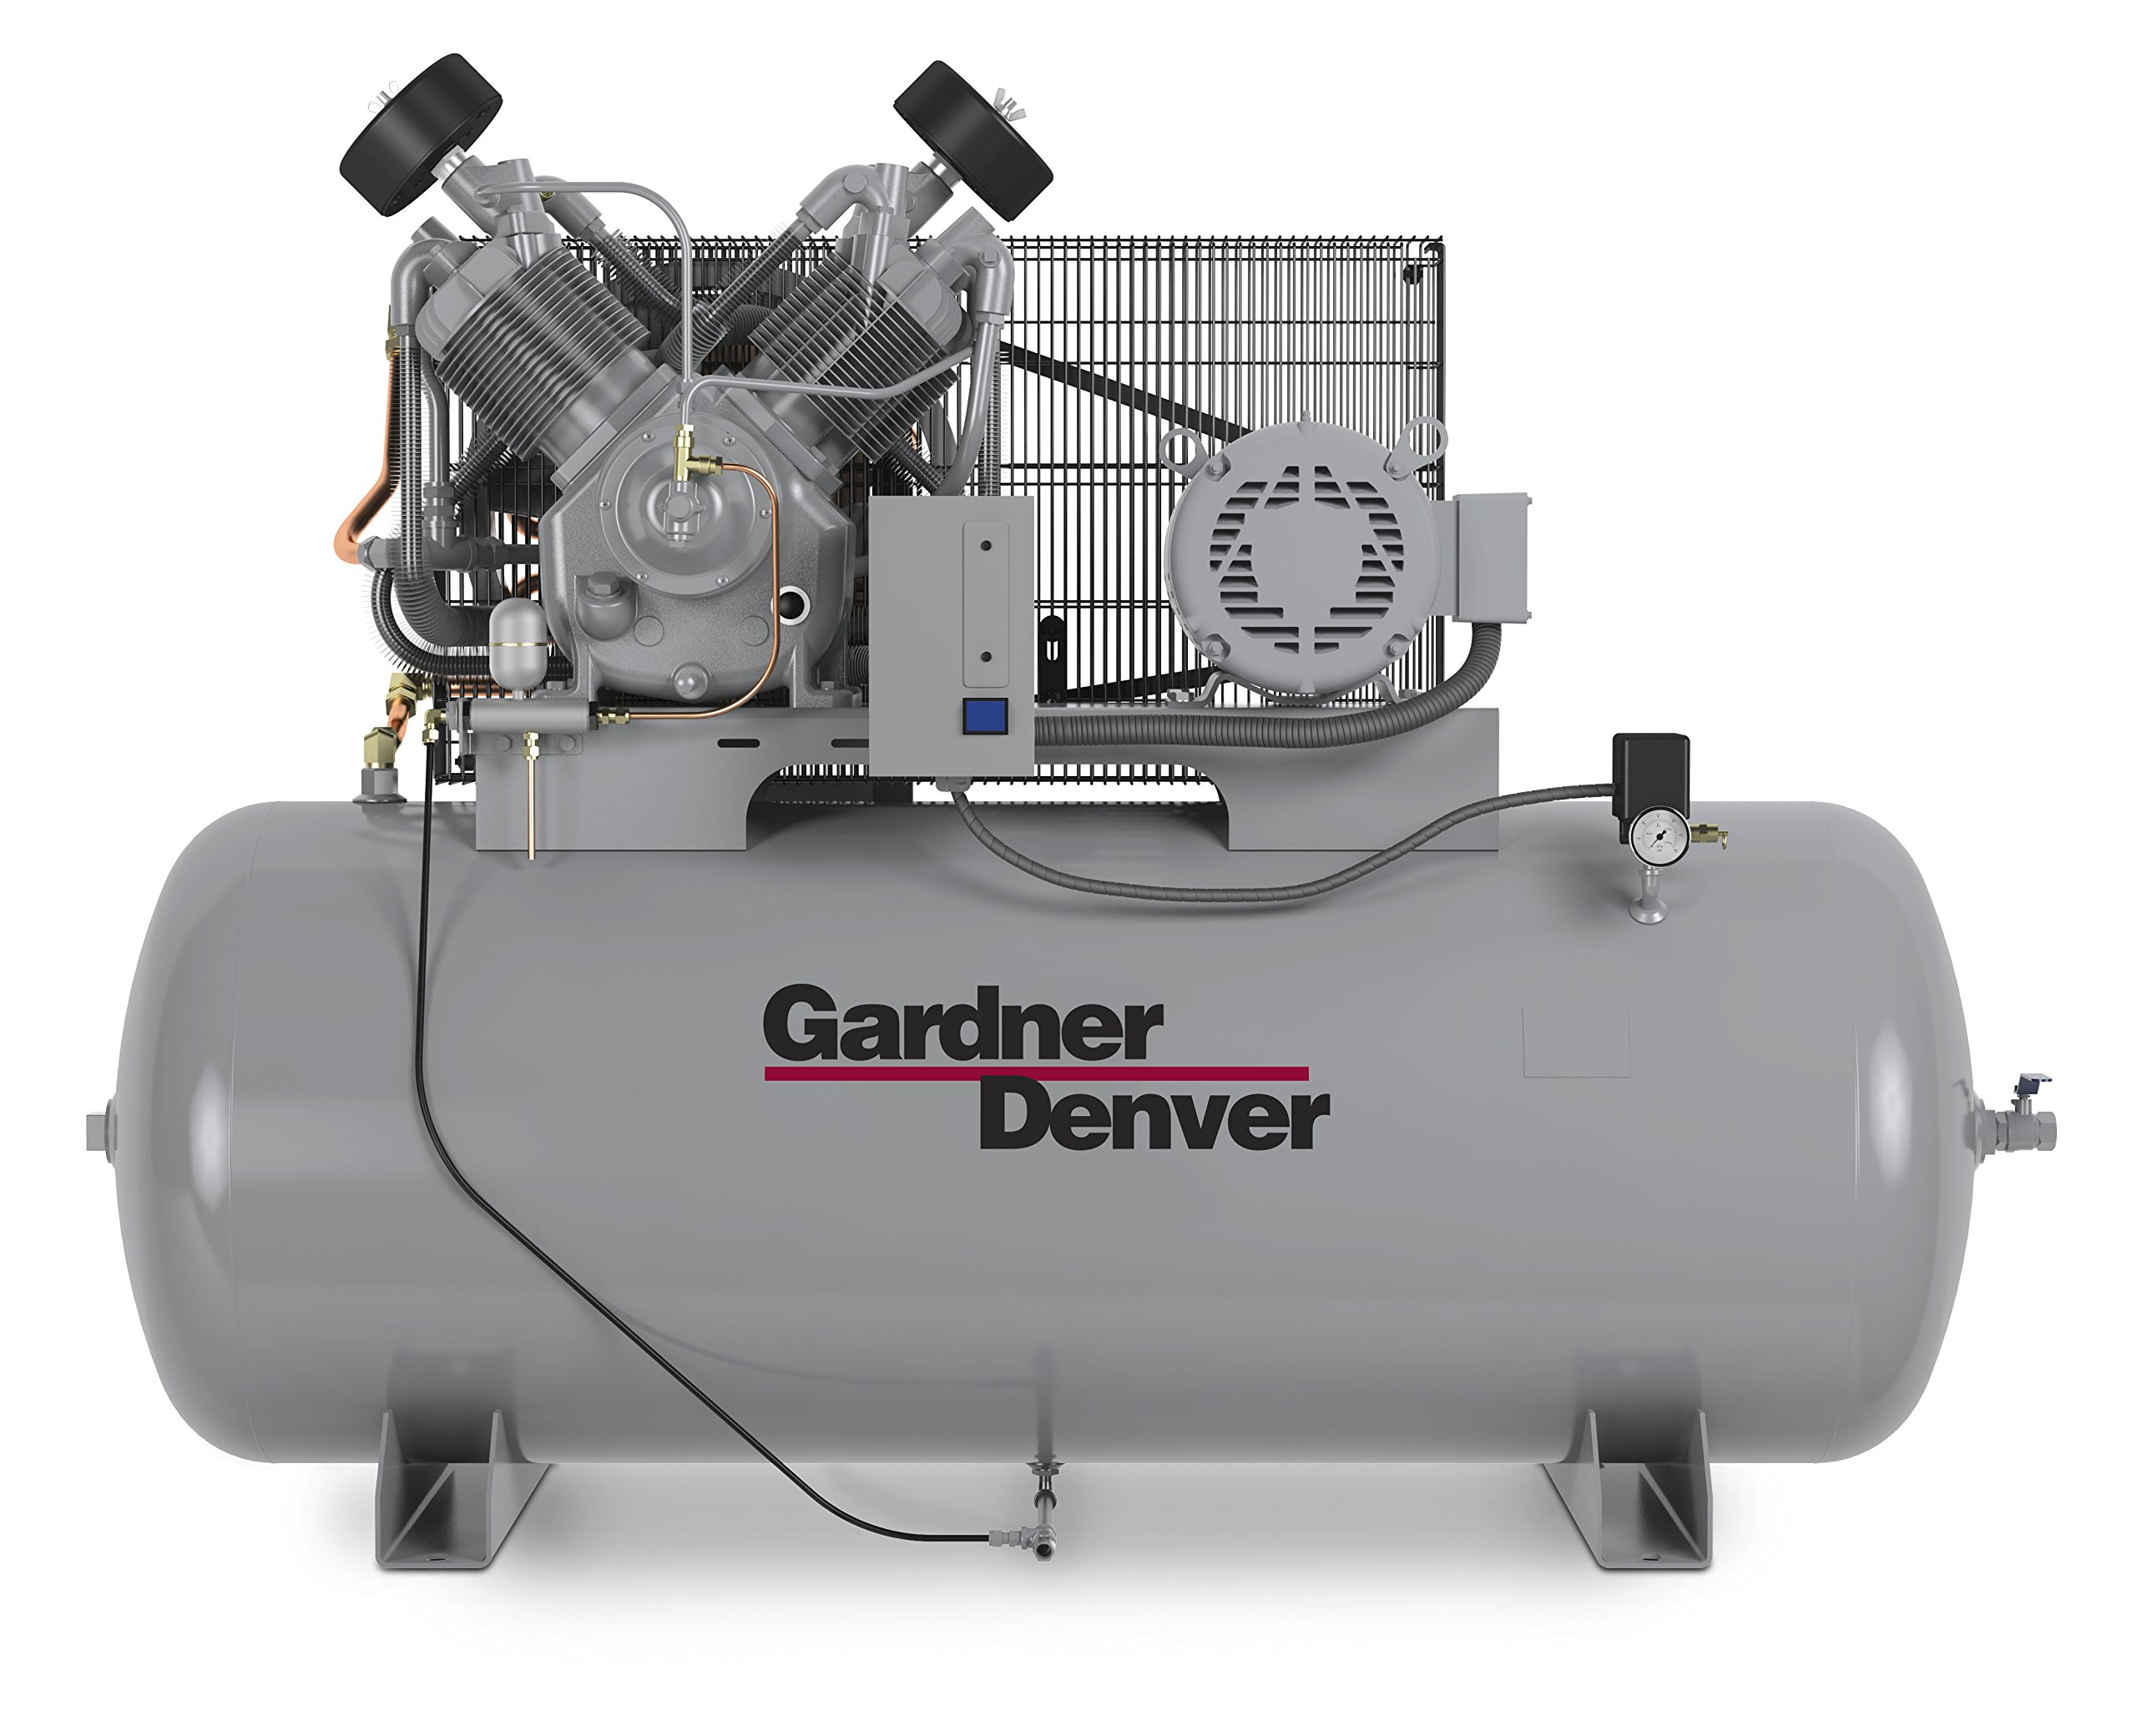 Gardner Denver Reward Series 10 HP Reciprocating Compressor 208V/3 Phase Mounted on a 120 Gallon California Coded Vertical Tank, 34.8 CFM Maximum Flow Rate